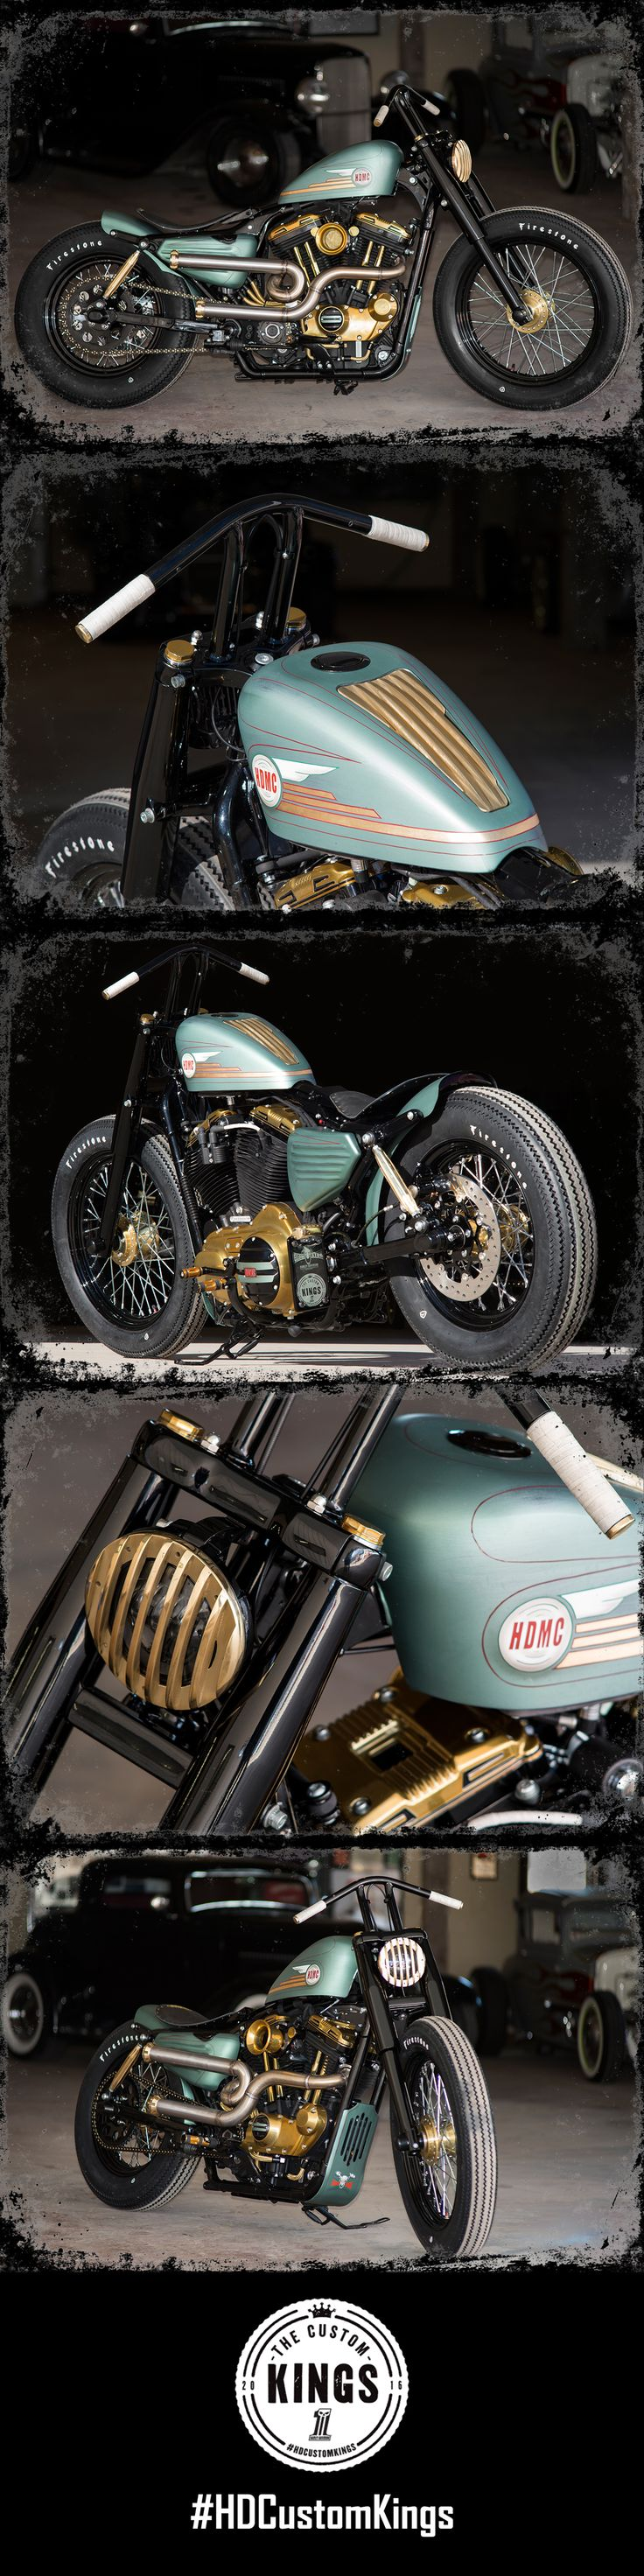 391 best images about harley davidson motorcycles and accessories on pinterest custom baggers. Black Bedroom Furniture Sets. Home Design Ideas